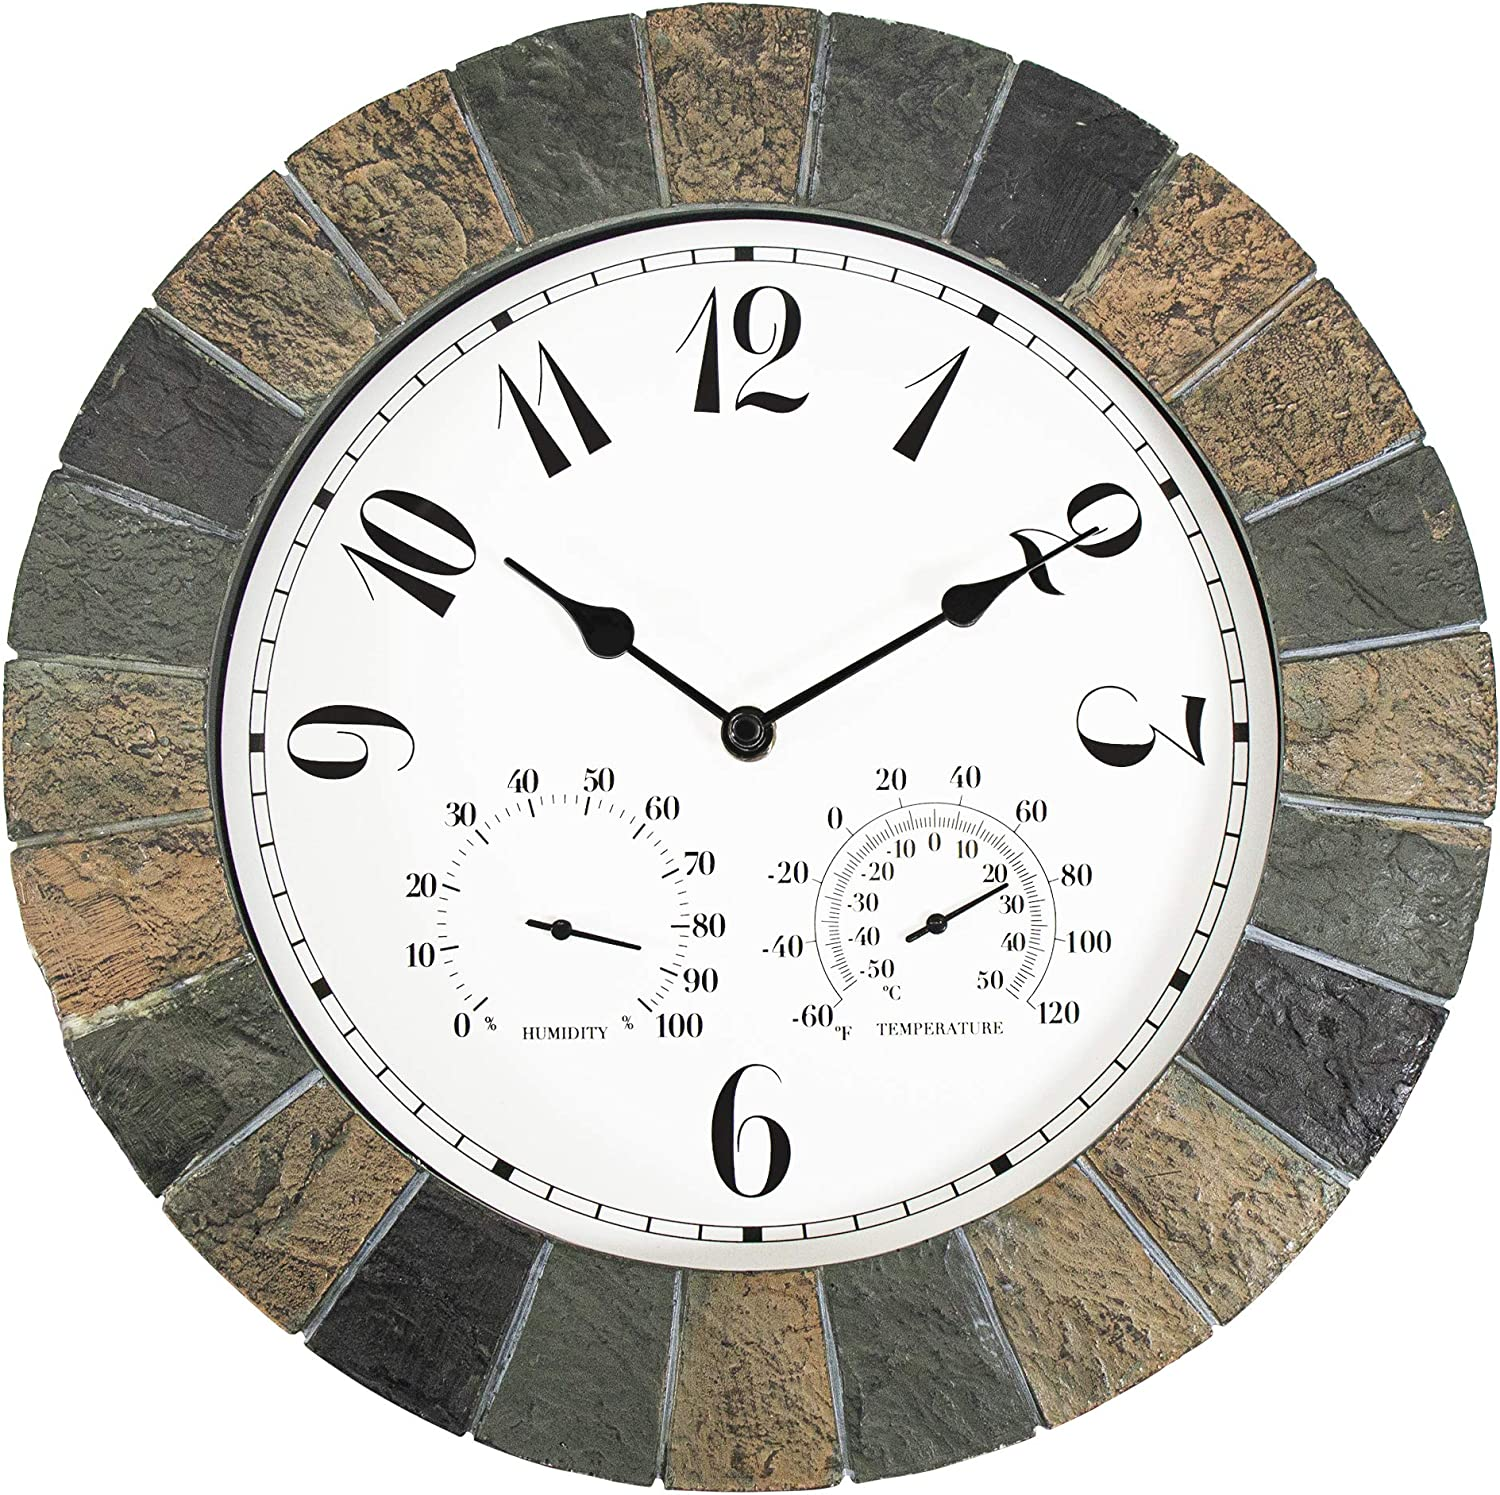 yookare 13 Inch Large Weatherproof Garden Faux Slate Frame Wall Clock Arabic Digits Easy to Ready Non-Ticking Quartz Battery Operated Moving, Muti Color